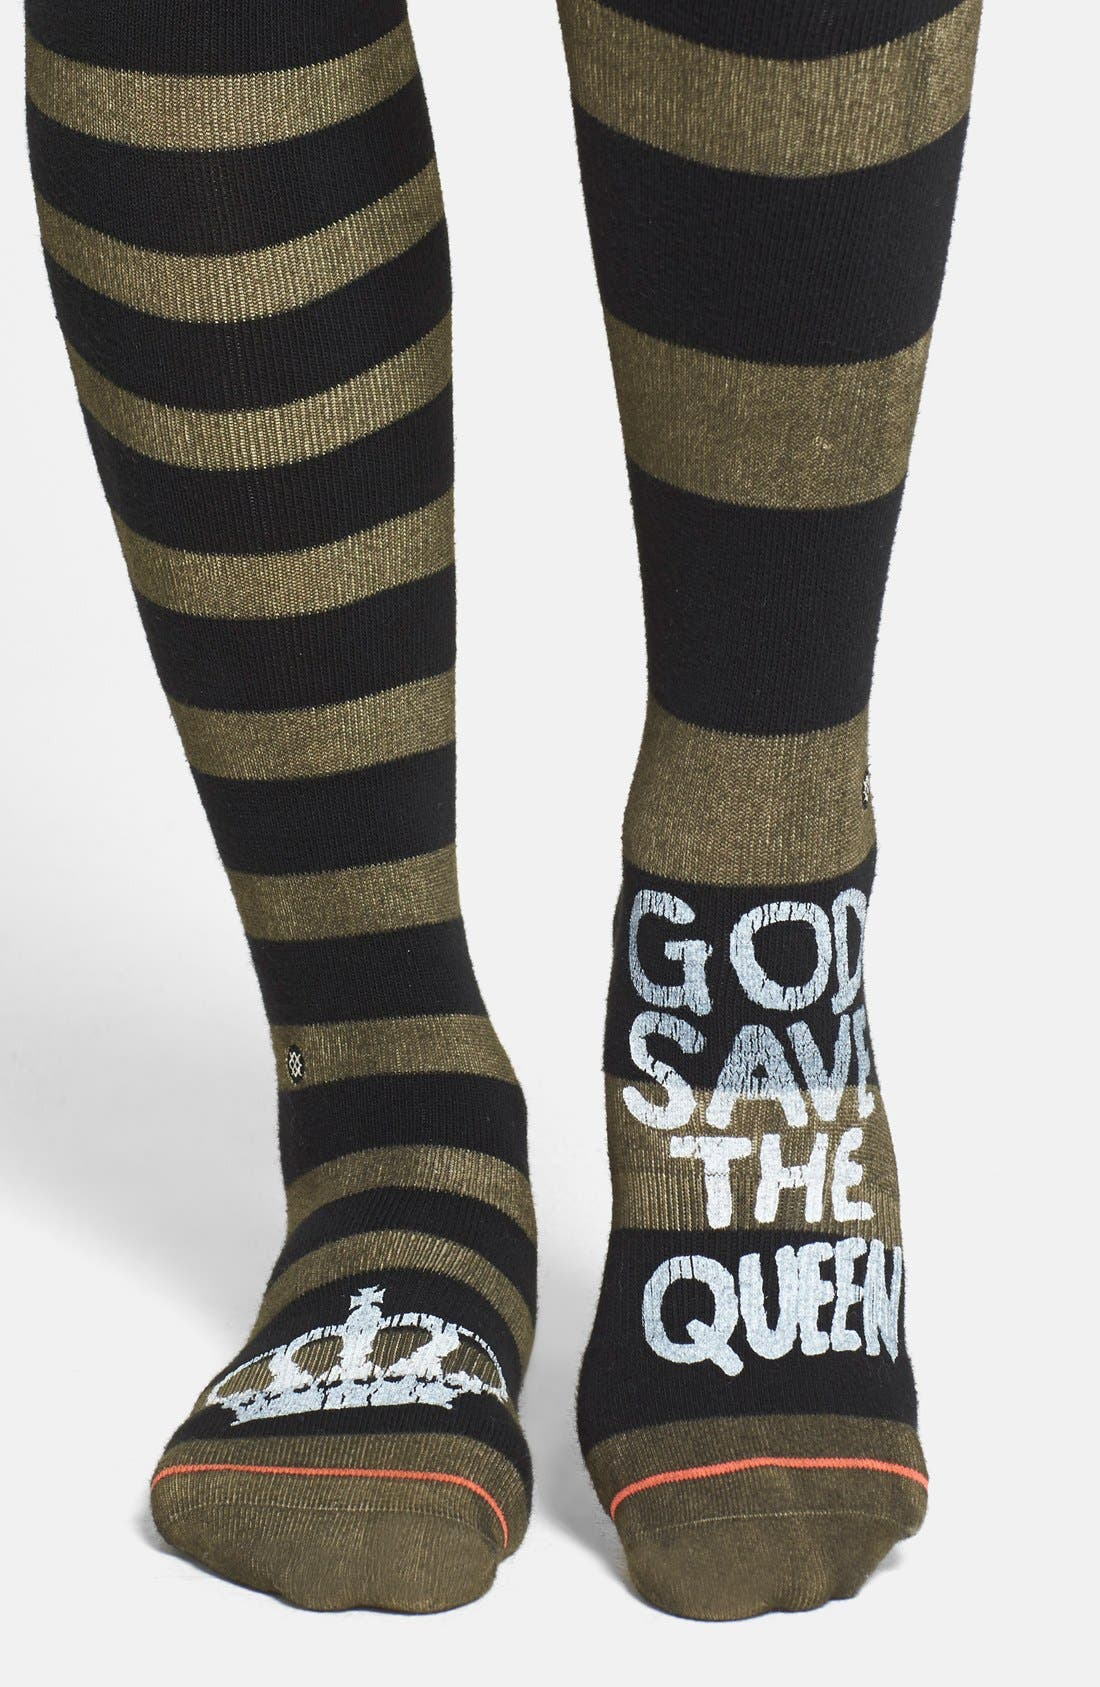 Alternate Image 1 Selected - Stance 'Save the Queen' Boot Socks